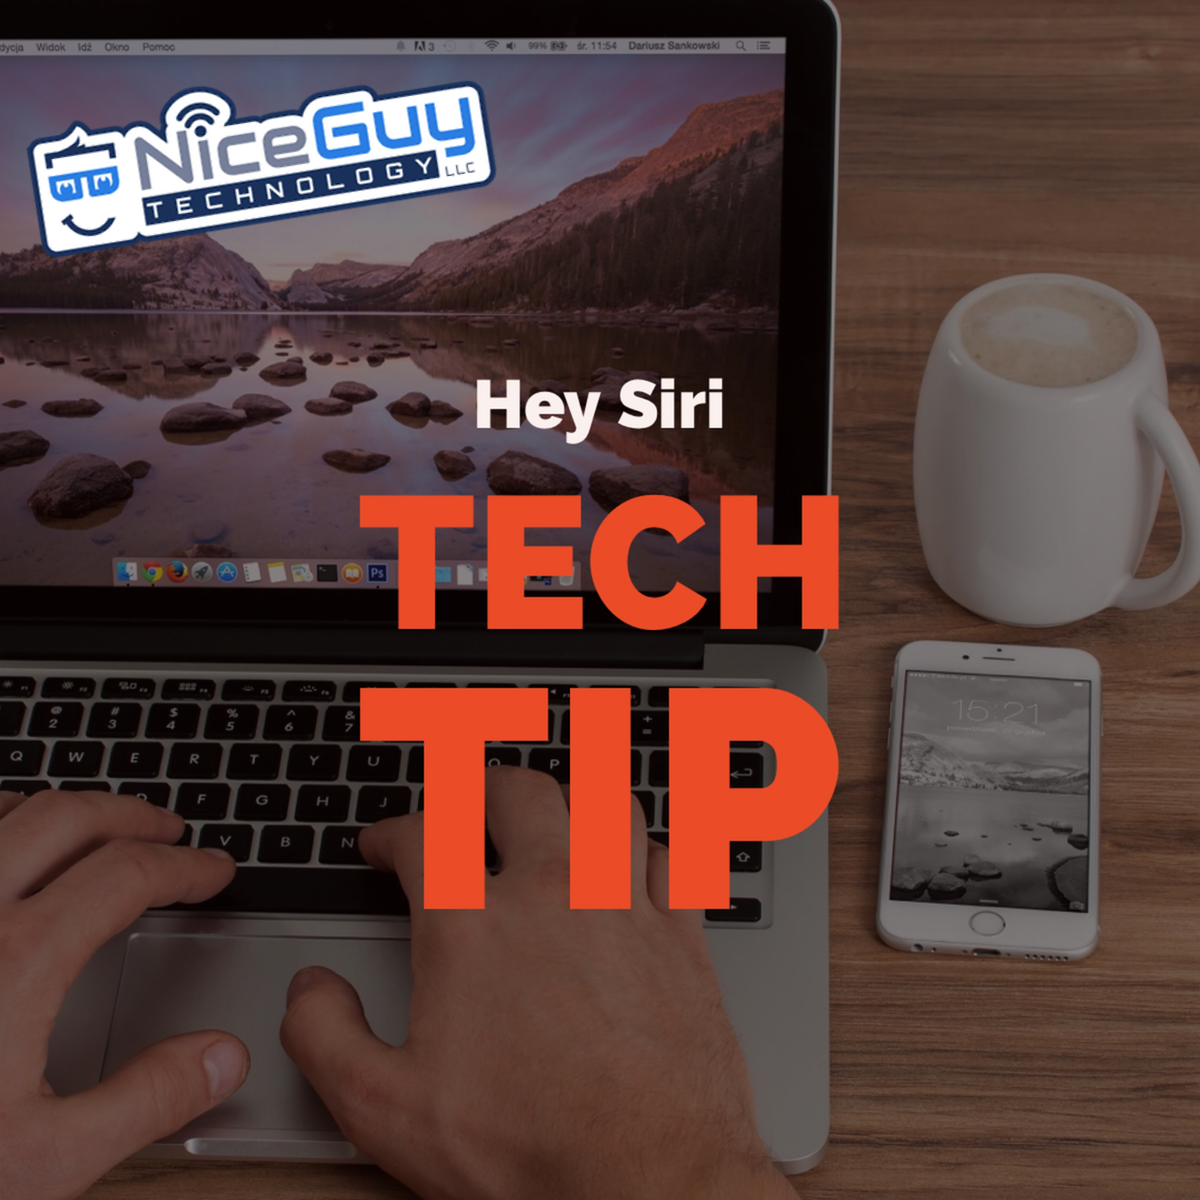 Nice Guy Technology LLC - Tech Tip - Hey Siri